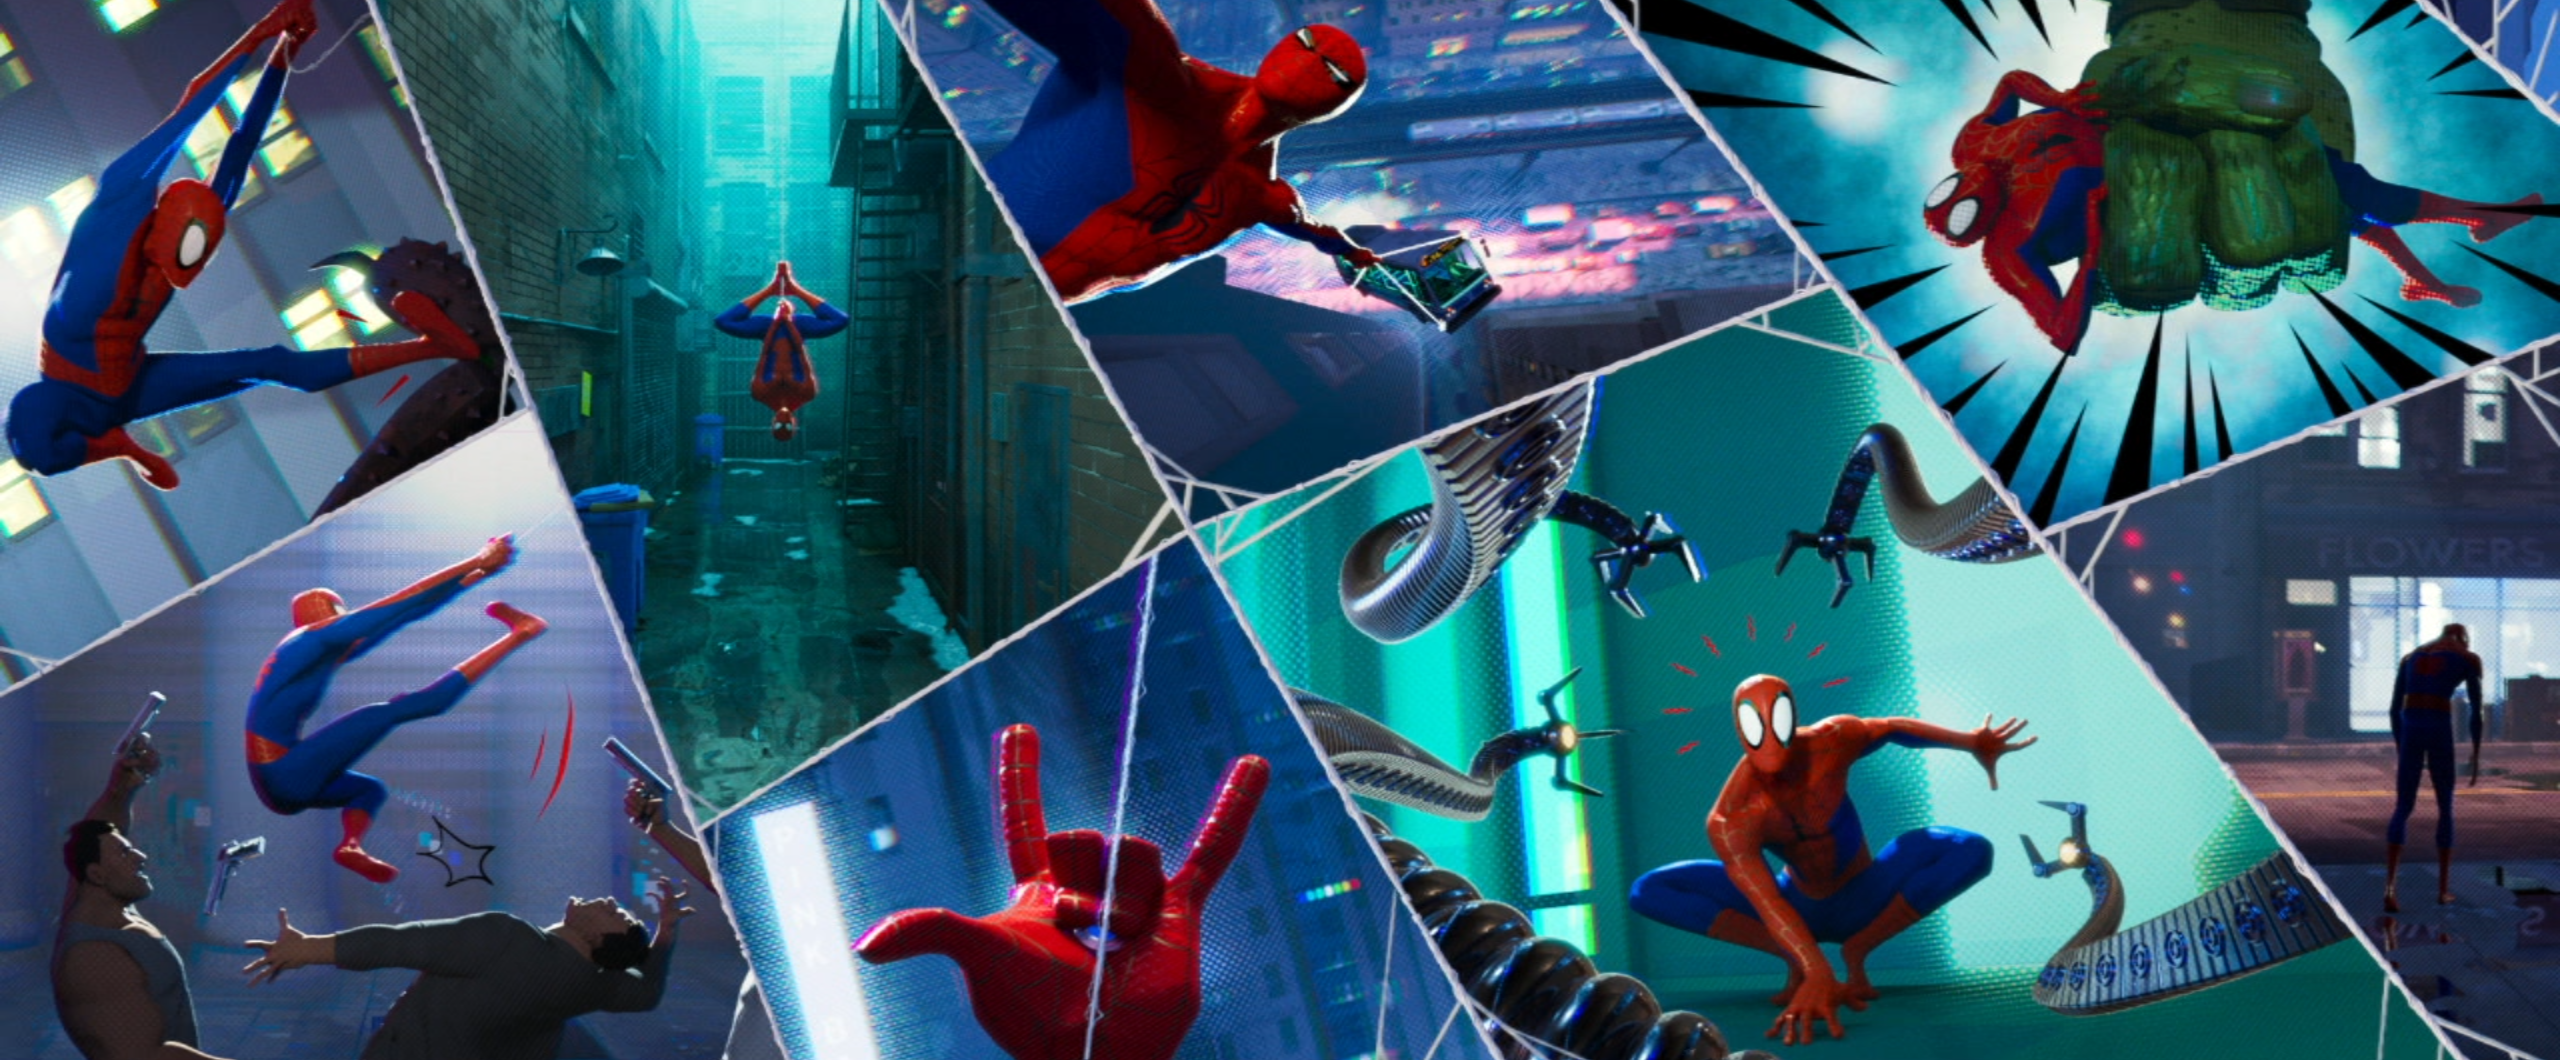 22136fbd46c61 The Most Detailed Into The Spider-Verse Trailer Breakdown You Could ...